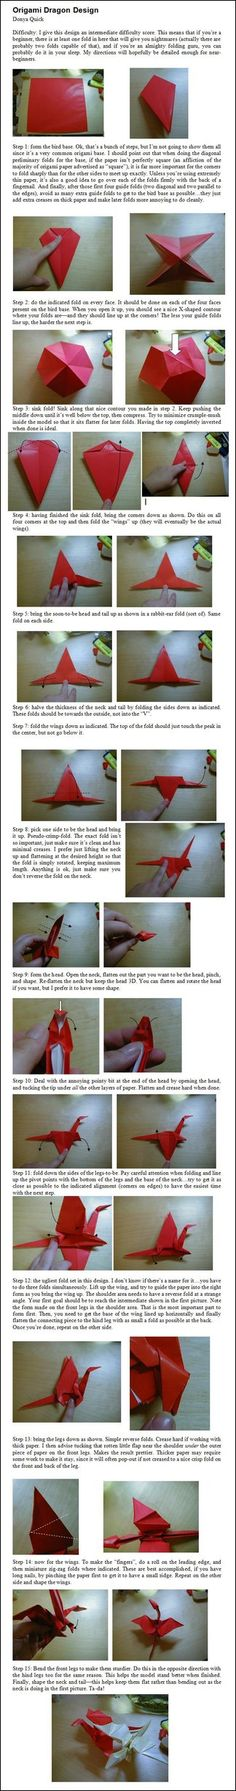 Origami Dragon Instructions By Donyaquick On Deviantart Kripa